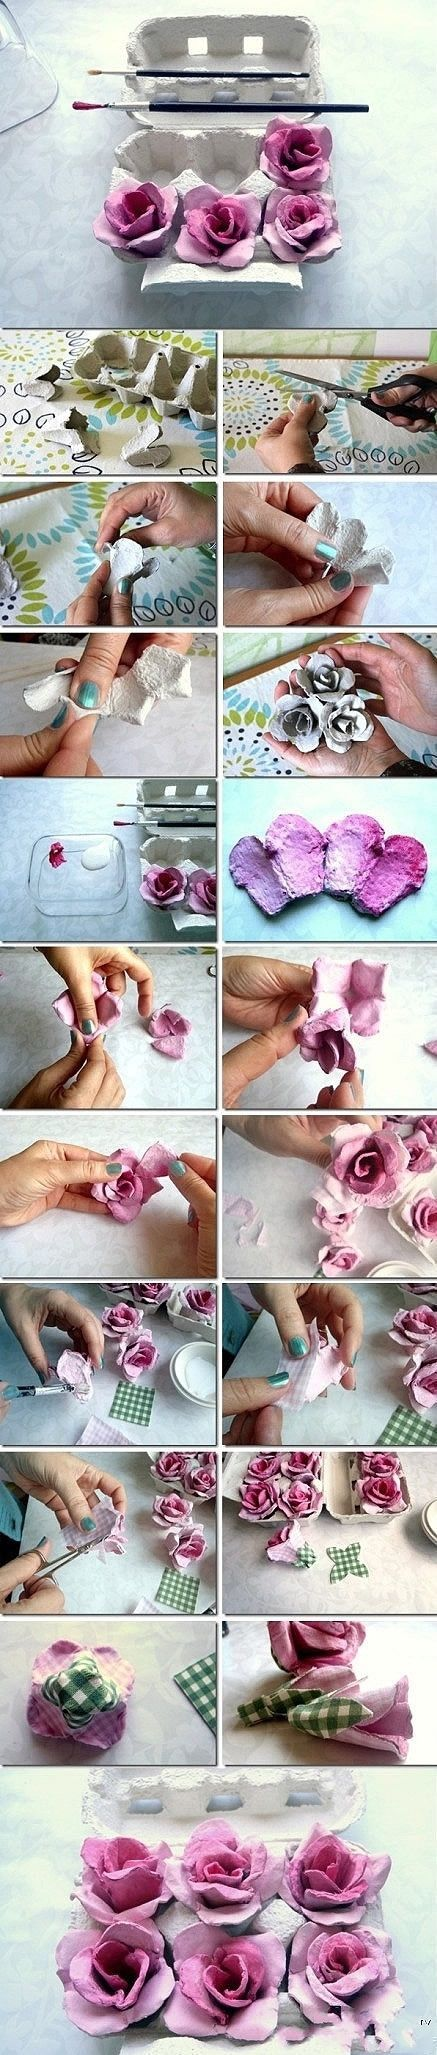 Diy flower flowers diy crafts home made easy crafts craft idea diy flower flowers diy crafts home made easy crafts craft idea crafts ideas diy ideas diy solutioingenieria Images